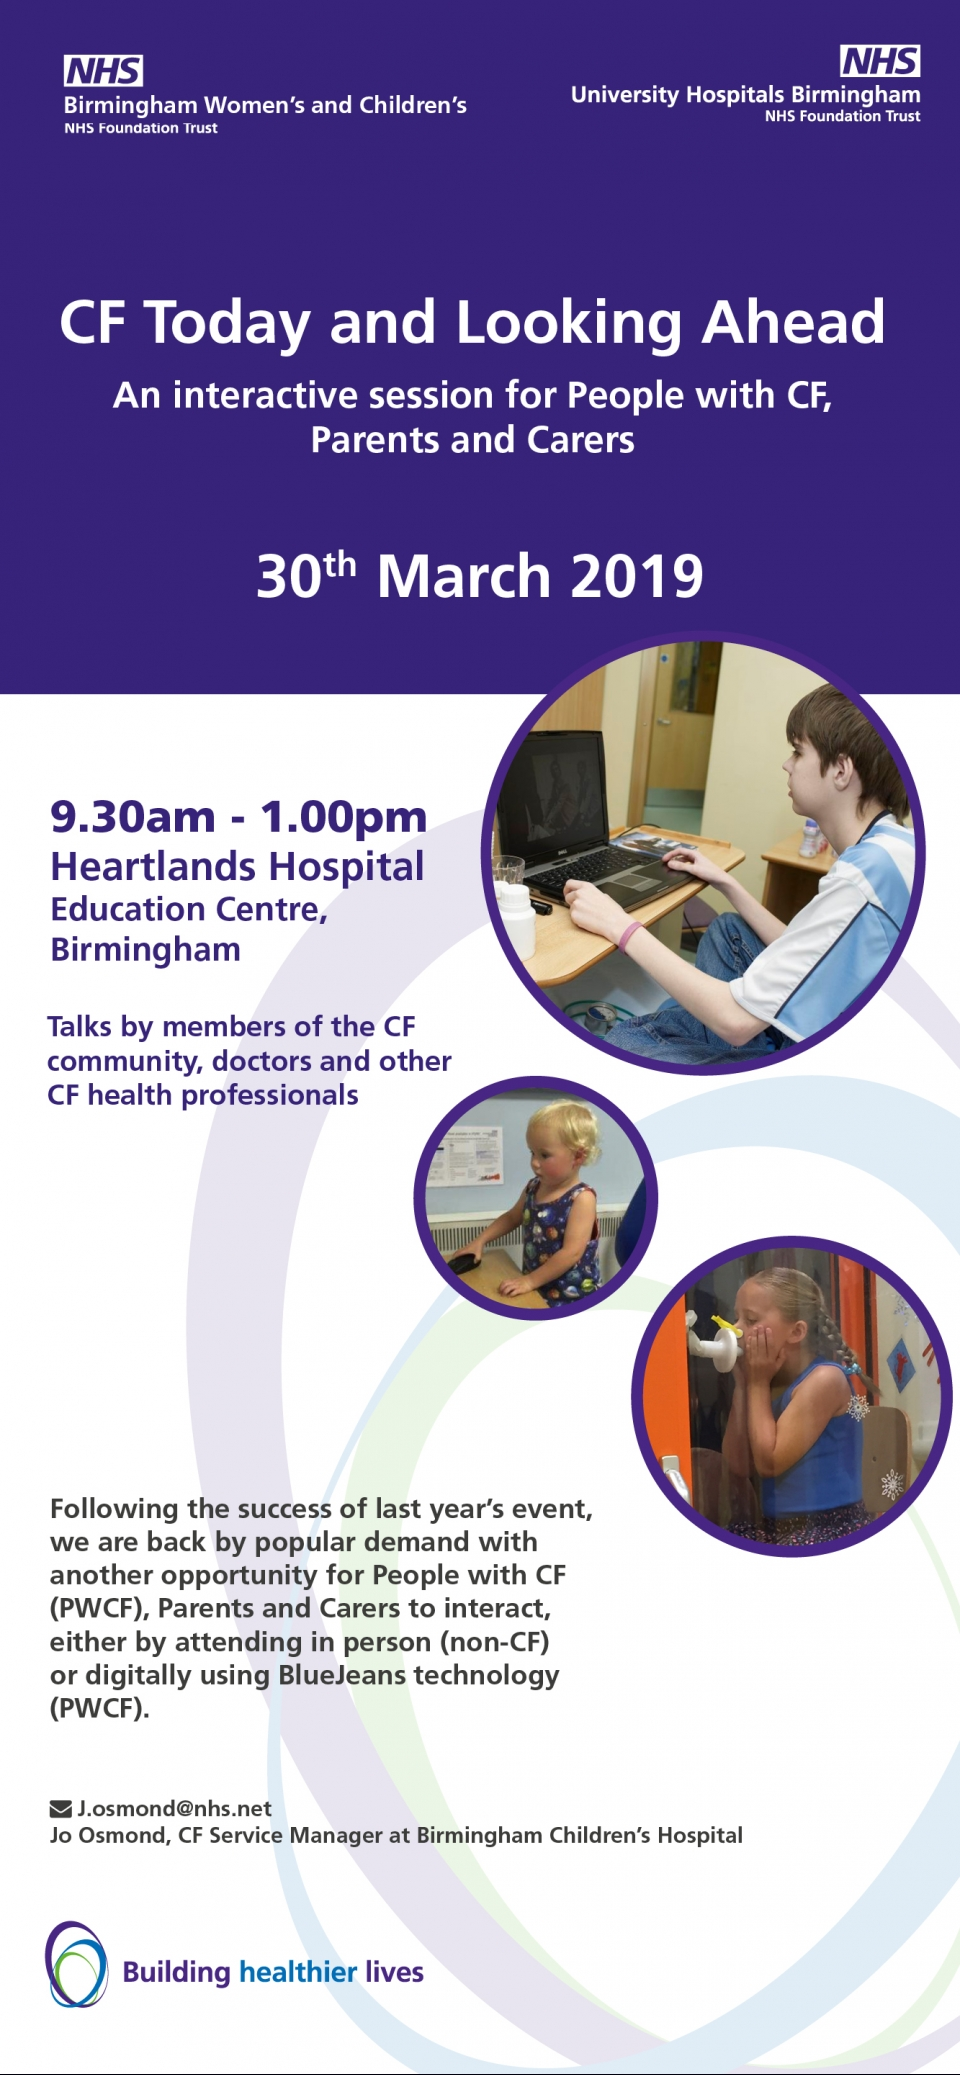 'CF Today and Looking Ahead' - Saturday 30th March 2019 from 9.30-1.00 pm